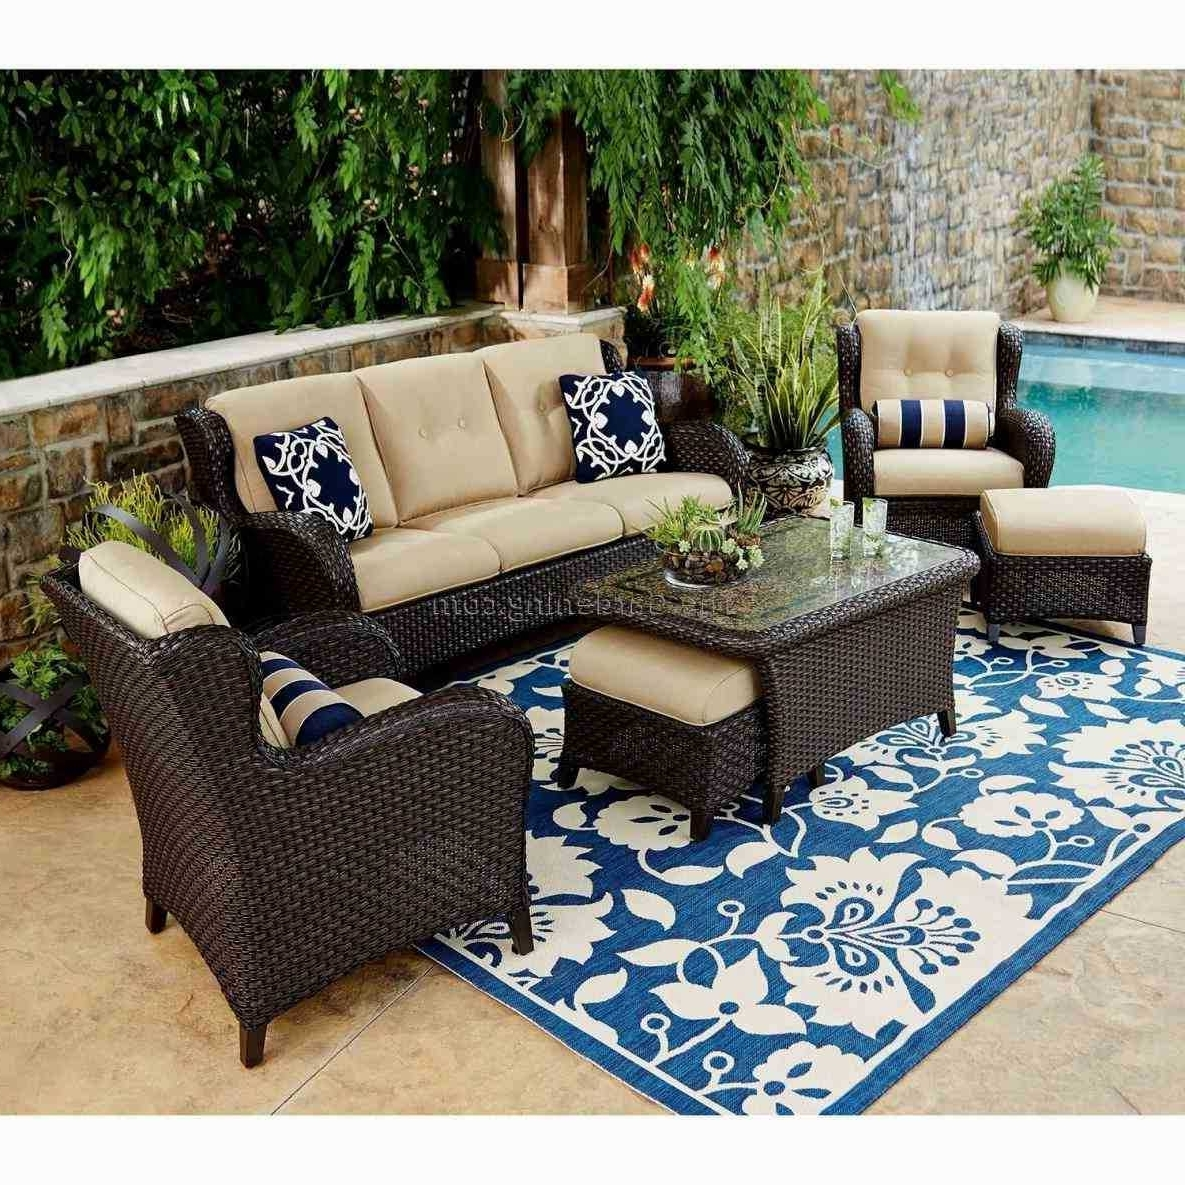 Patio Conversation Sets Under 200 Pertaining To Most Up To Date Patio Furniture Under $200 – Patio Ideas (View 10 of 15)